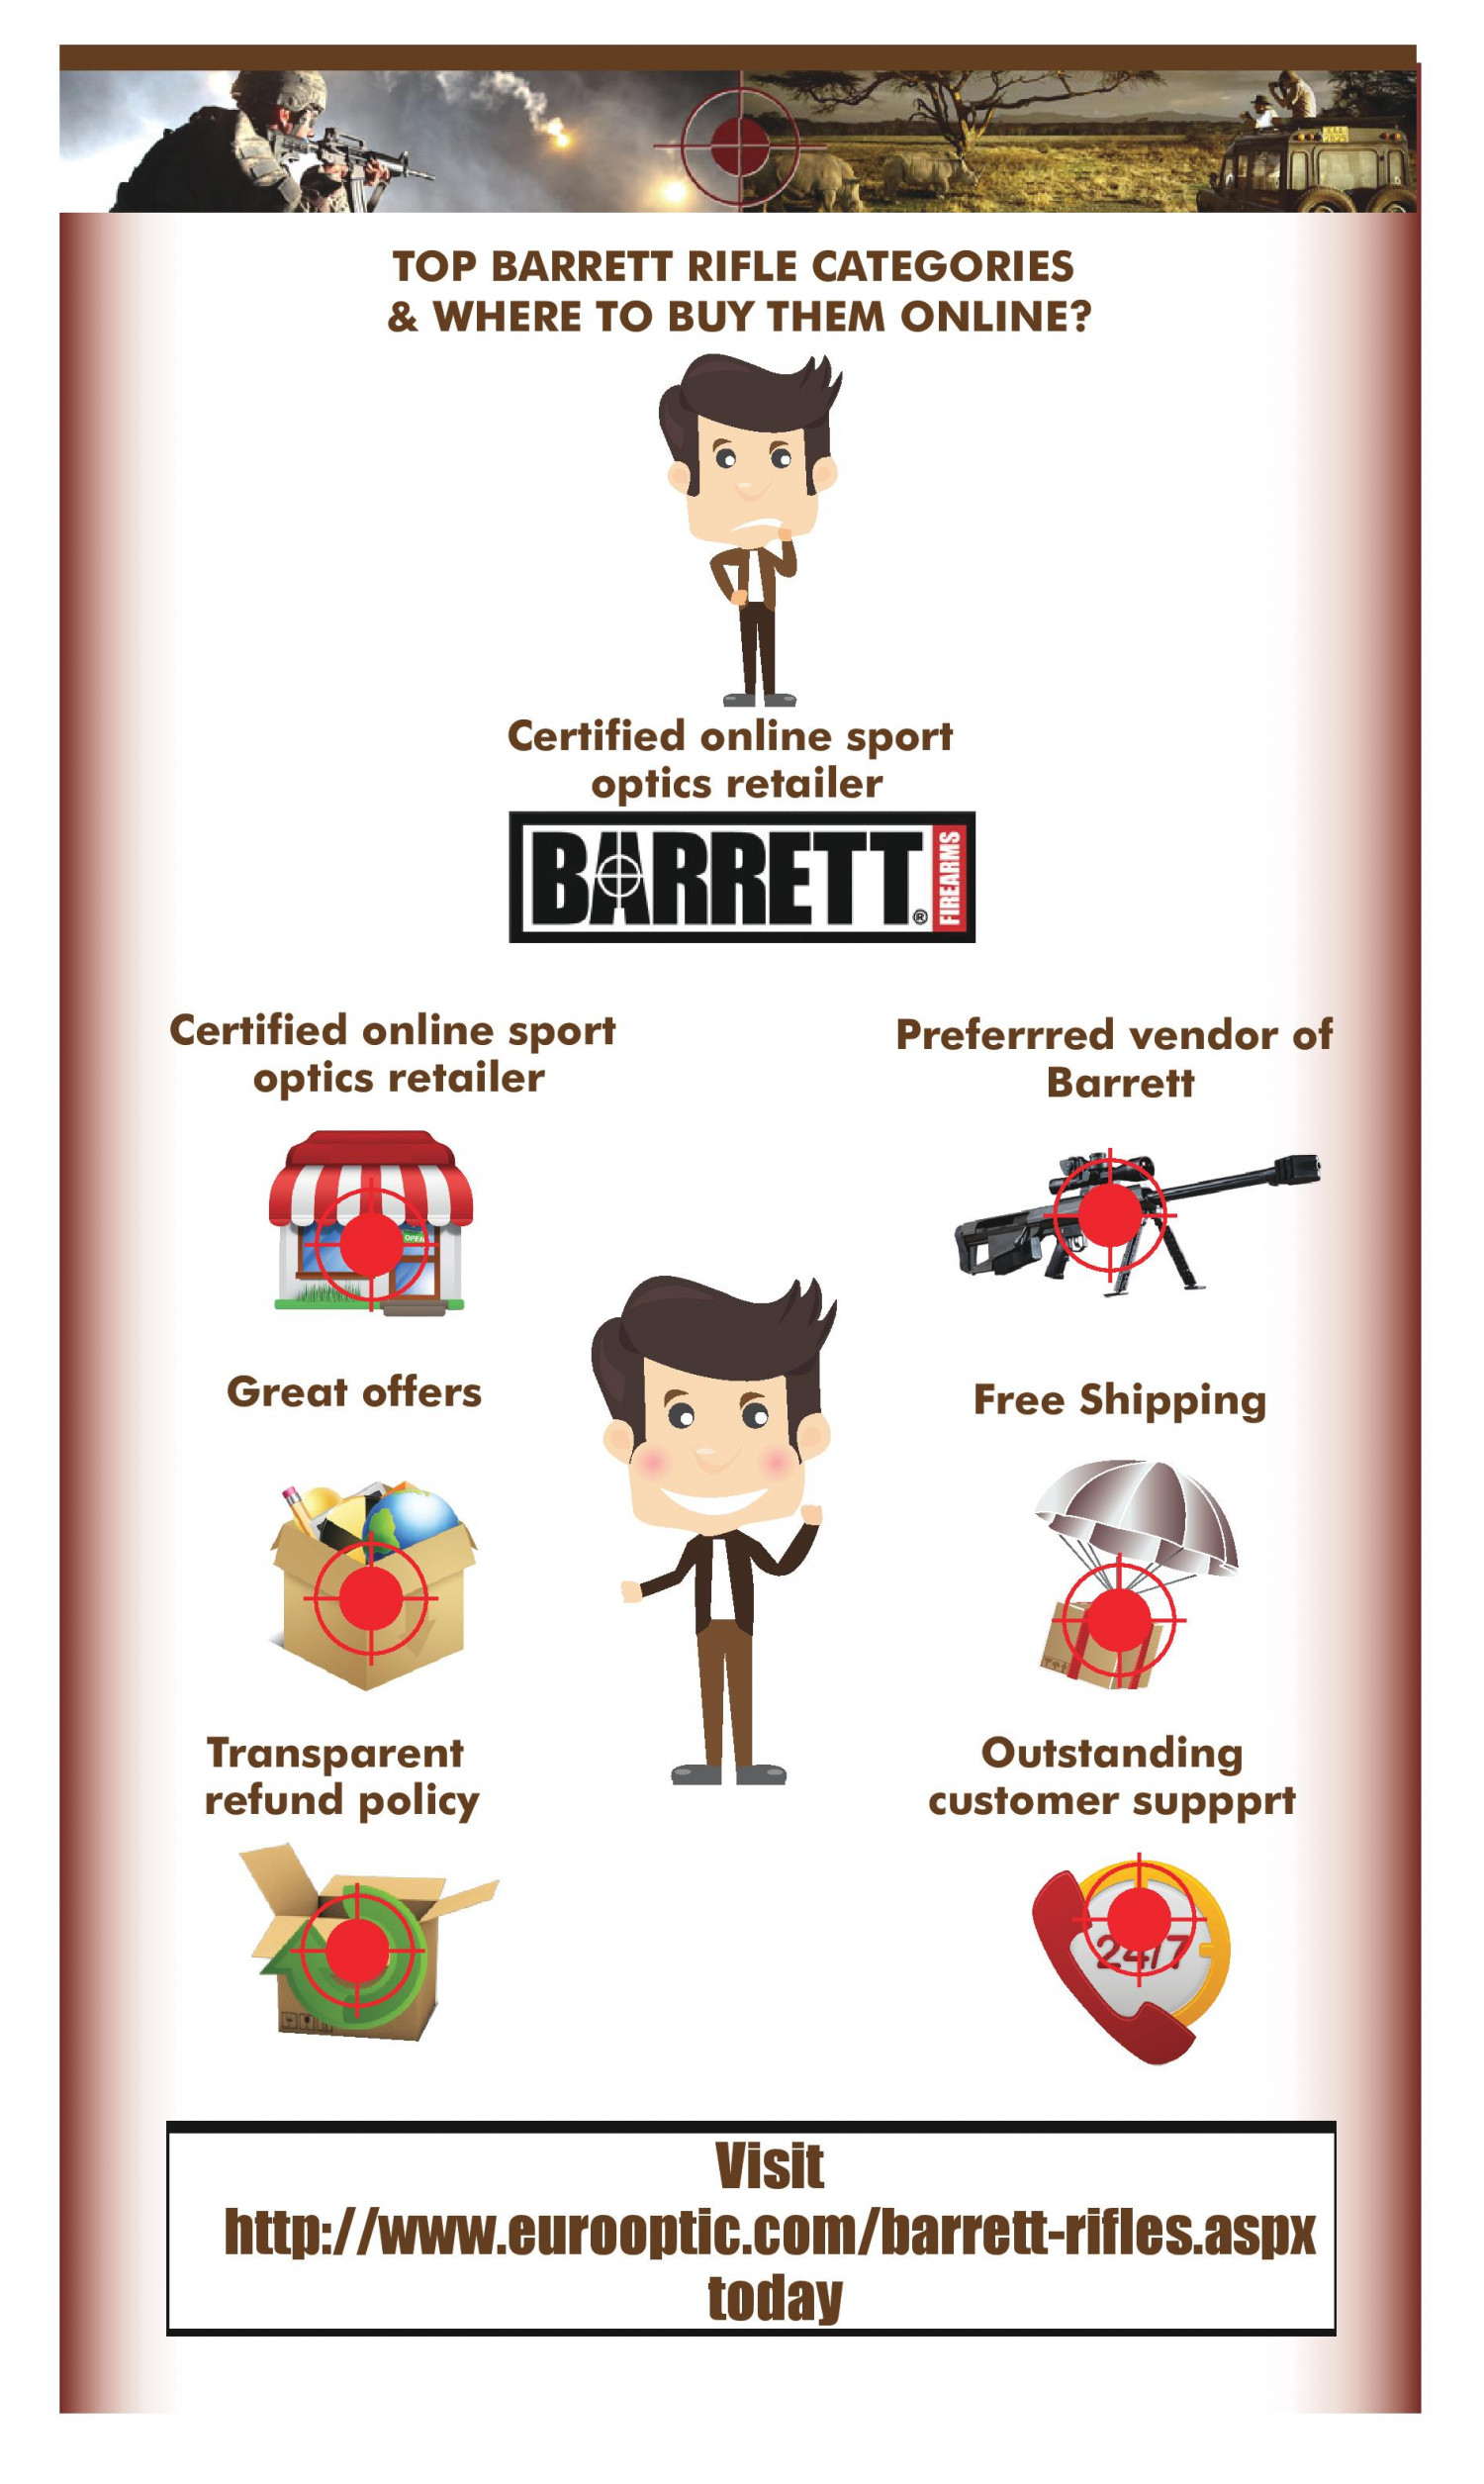 Top Categories of Barrett Rifles - Where to Buy Them Online Infographic